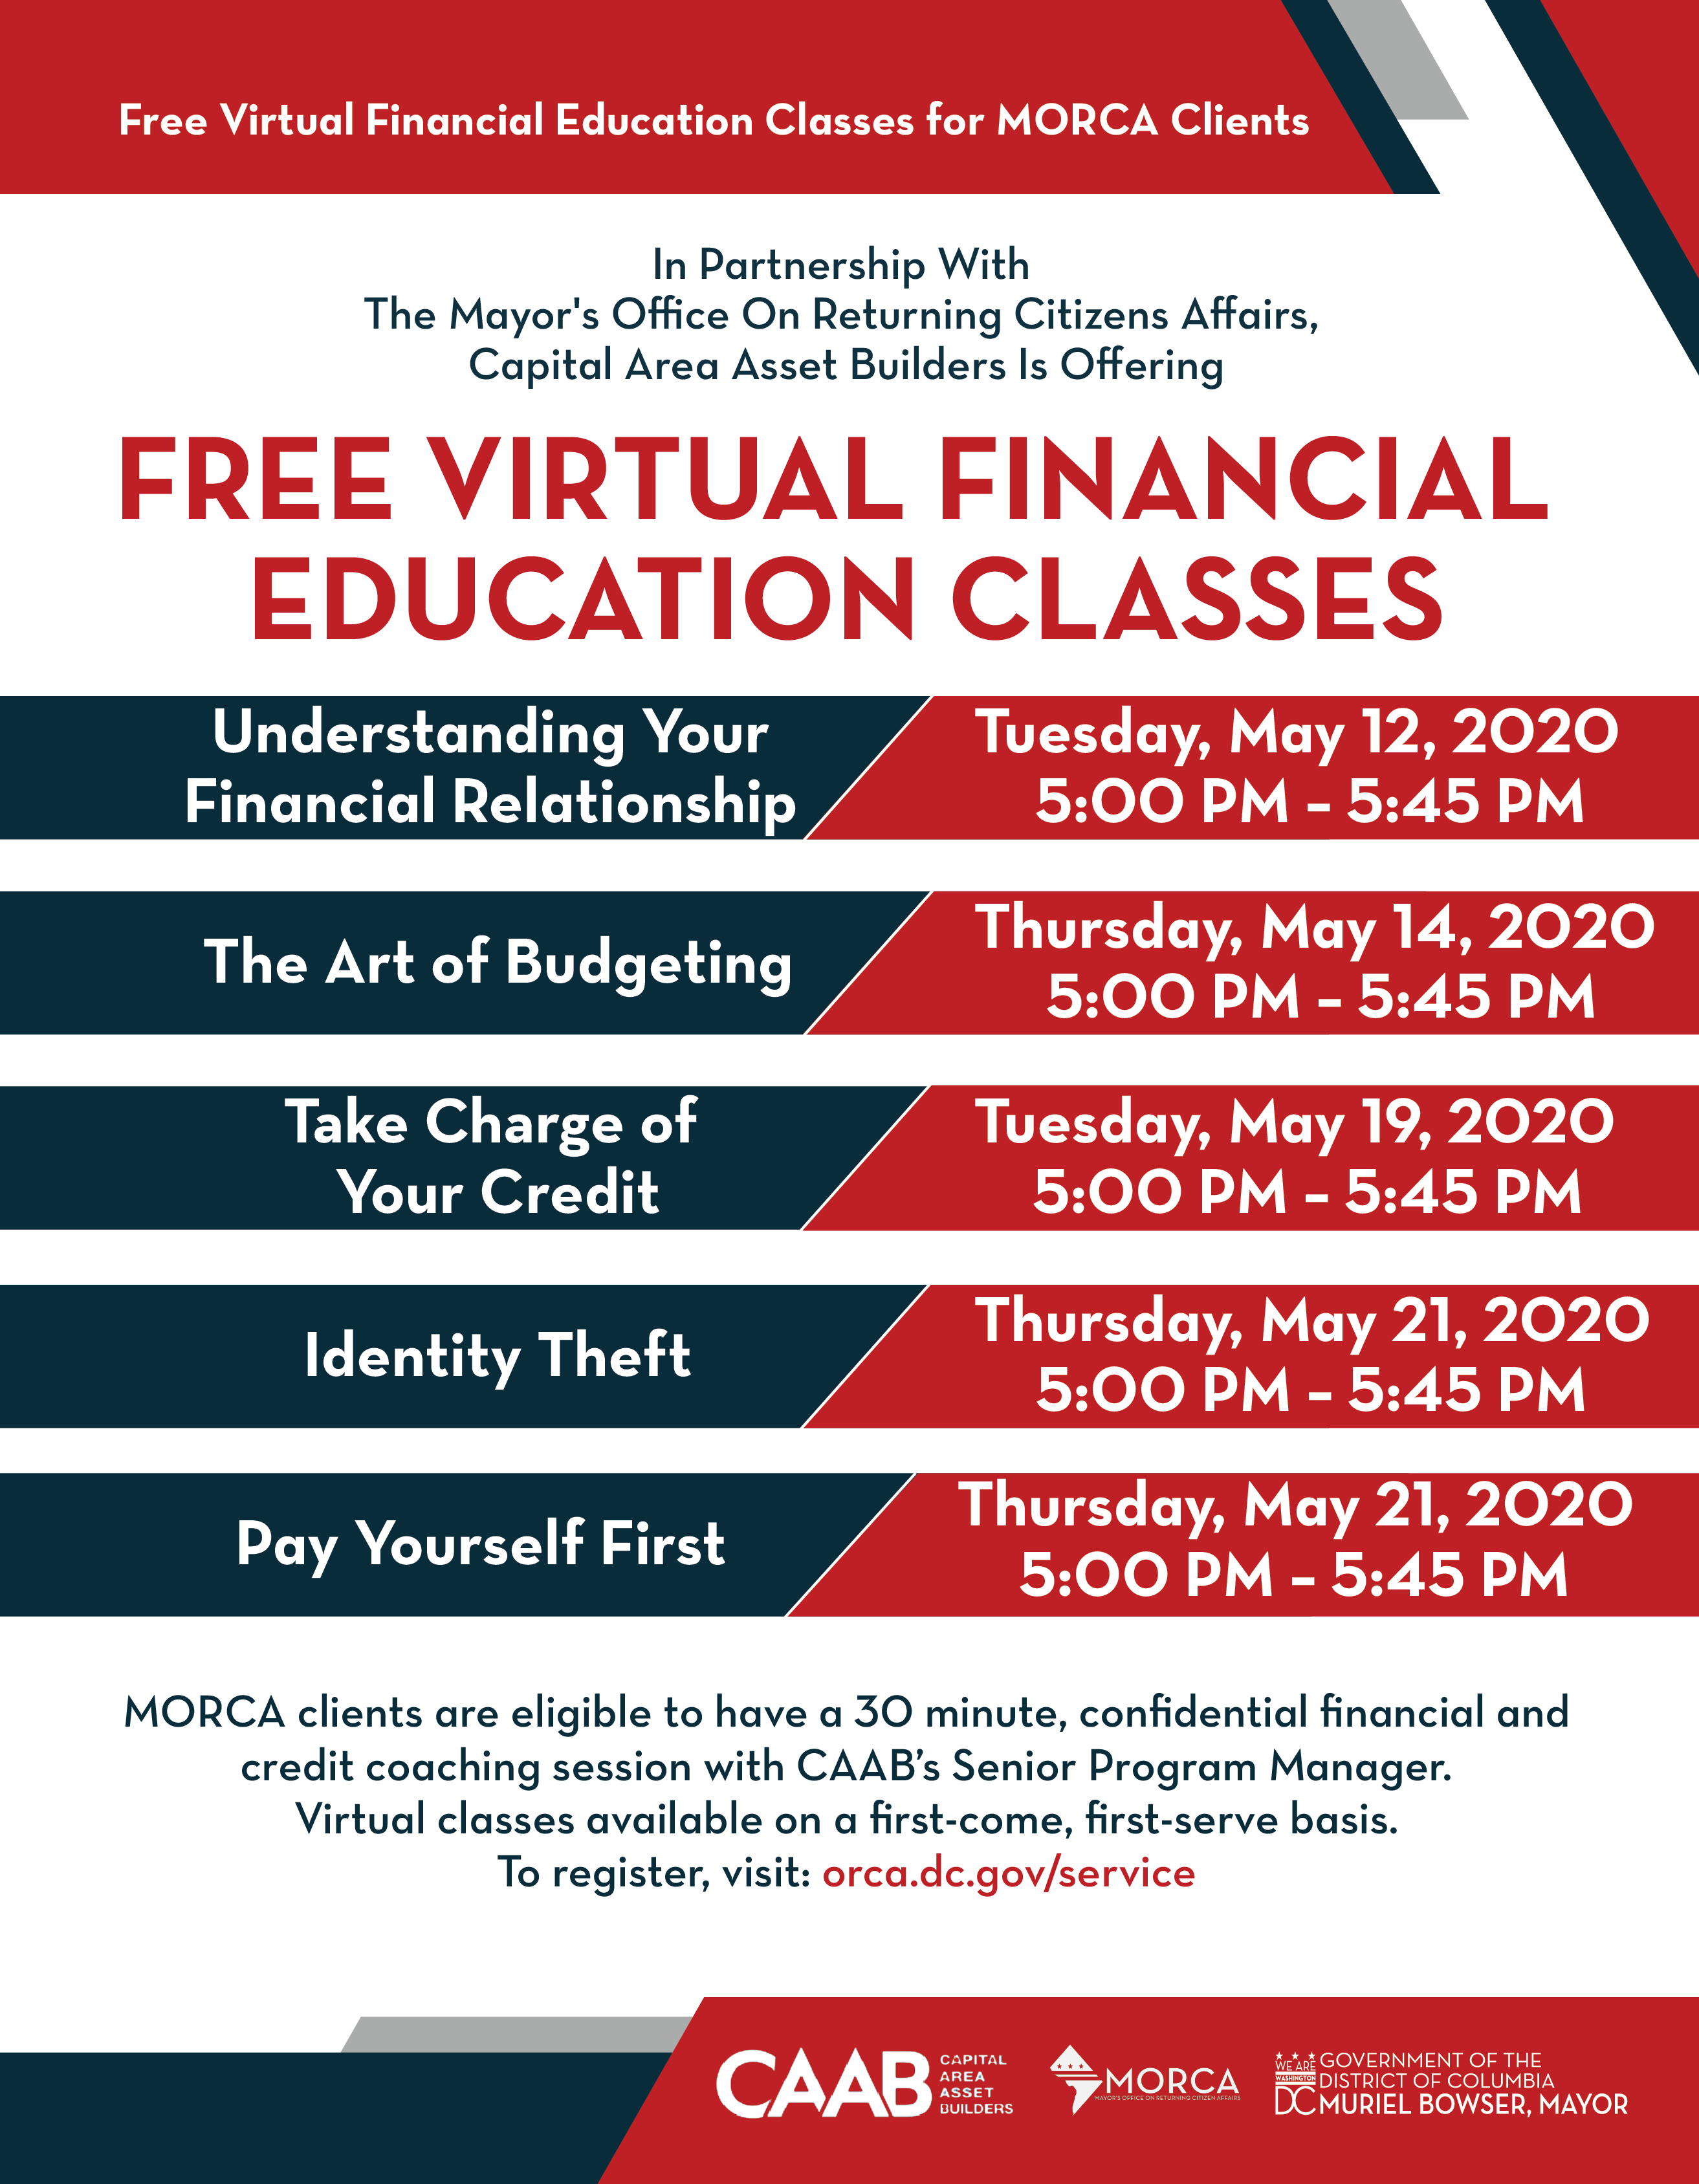 To register for the classes please click this link:https://dcmayor.secure.force.com/MORCARegistration